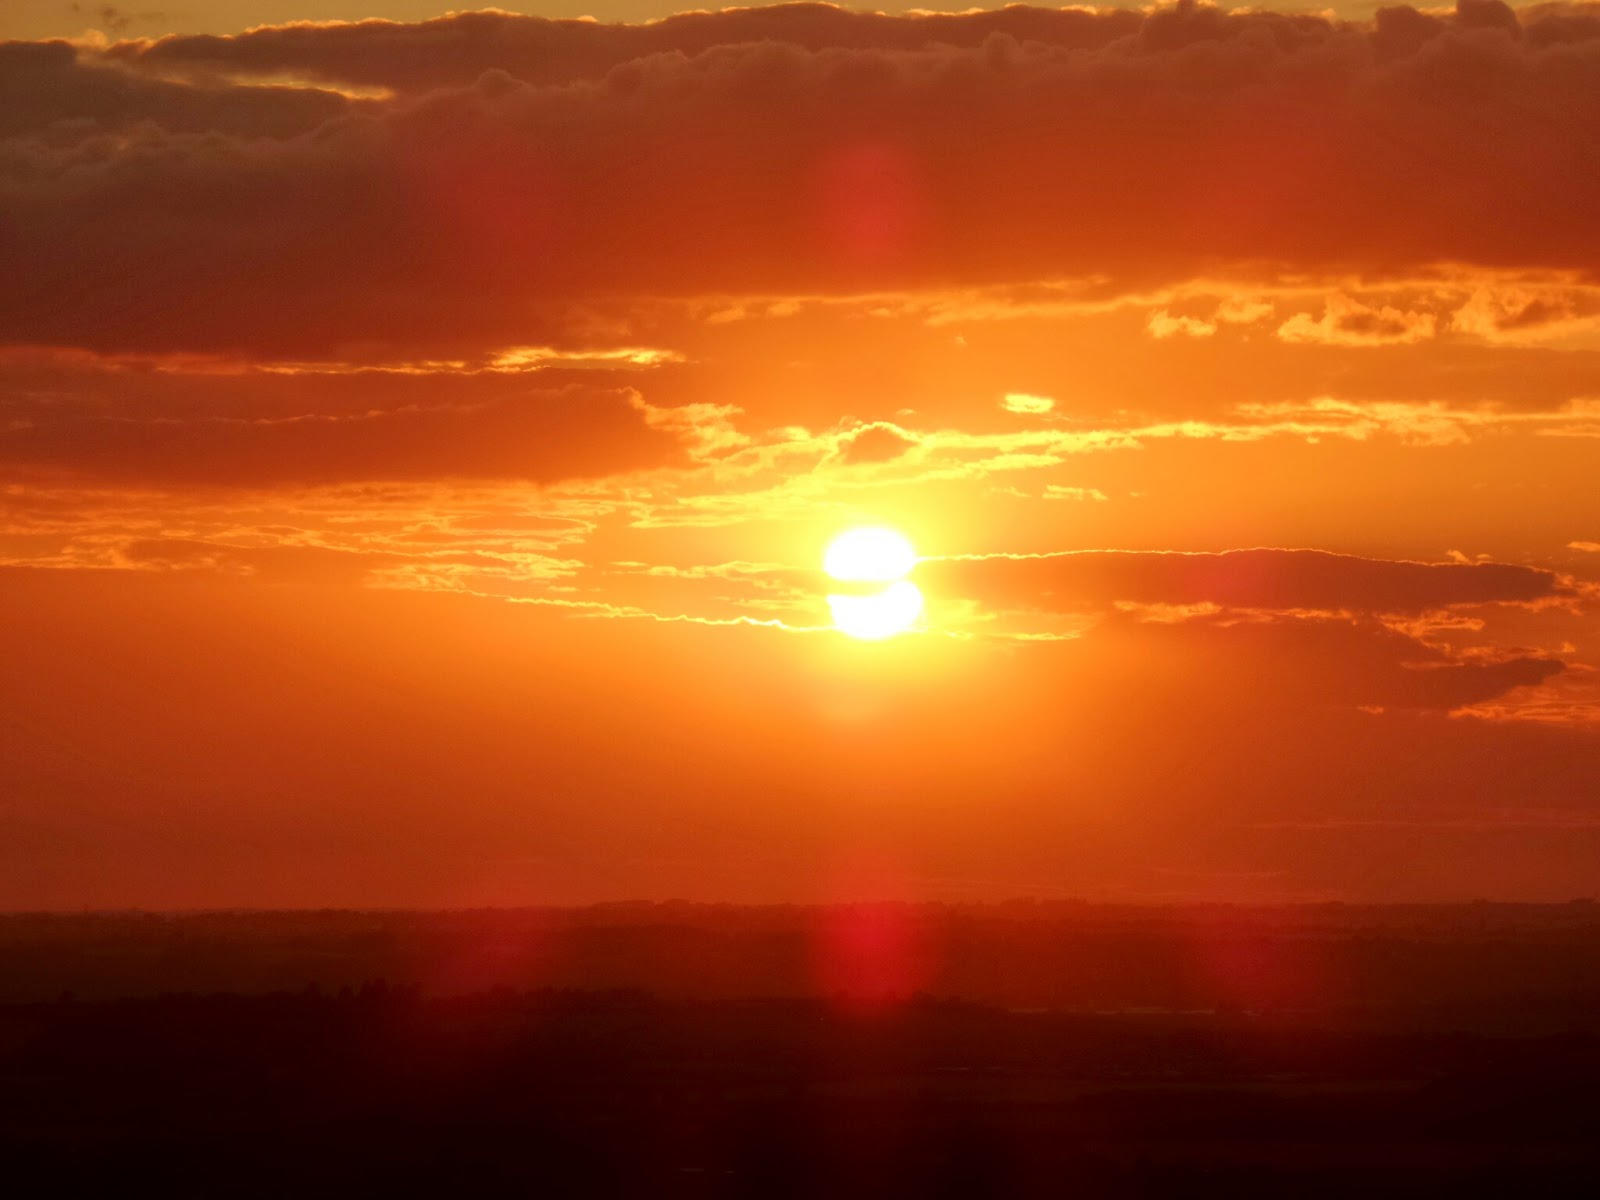 Sunset from Dunstable Downs in Summer